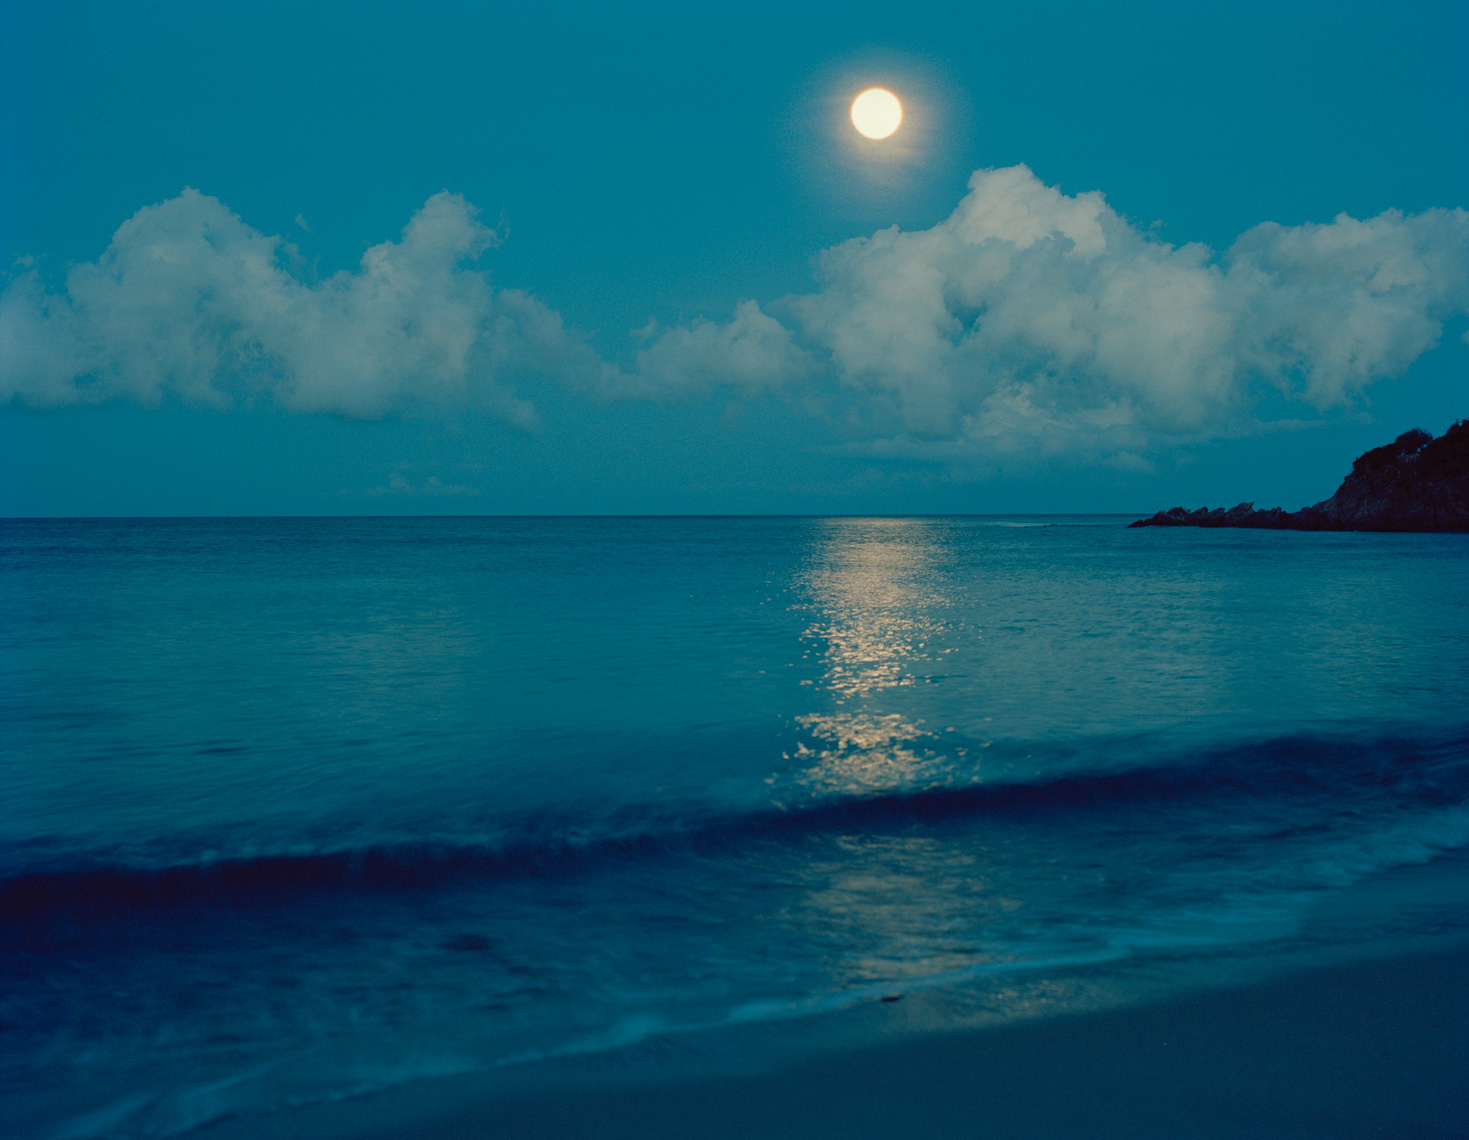 corsica-beach-moon-night-2013-bigger-moon.jpg